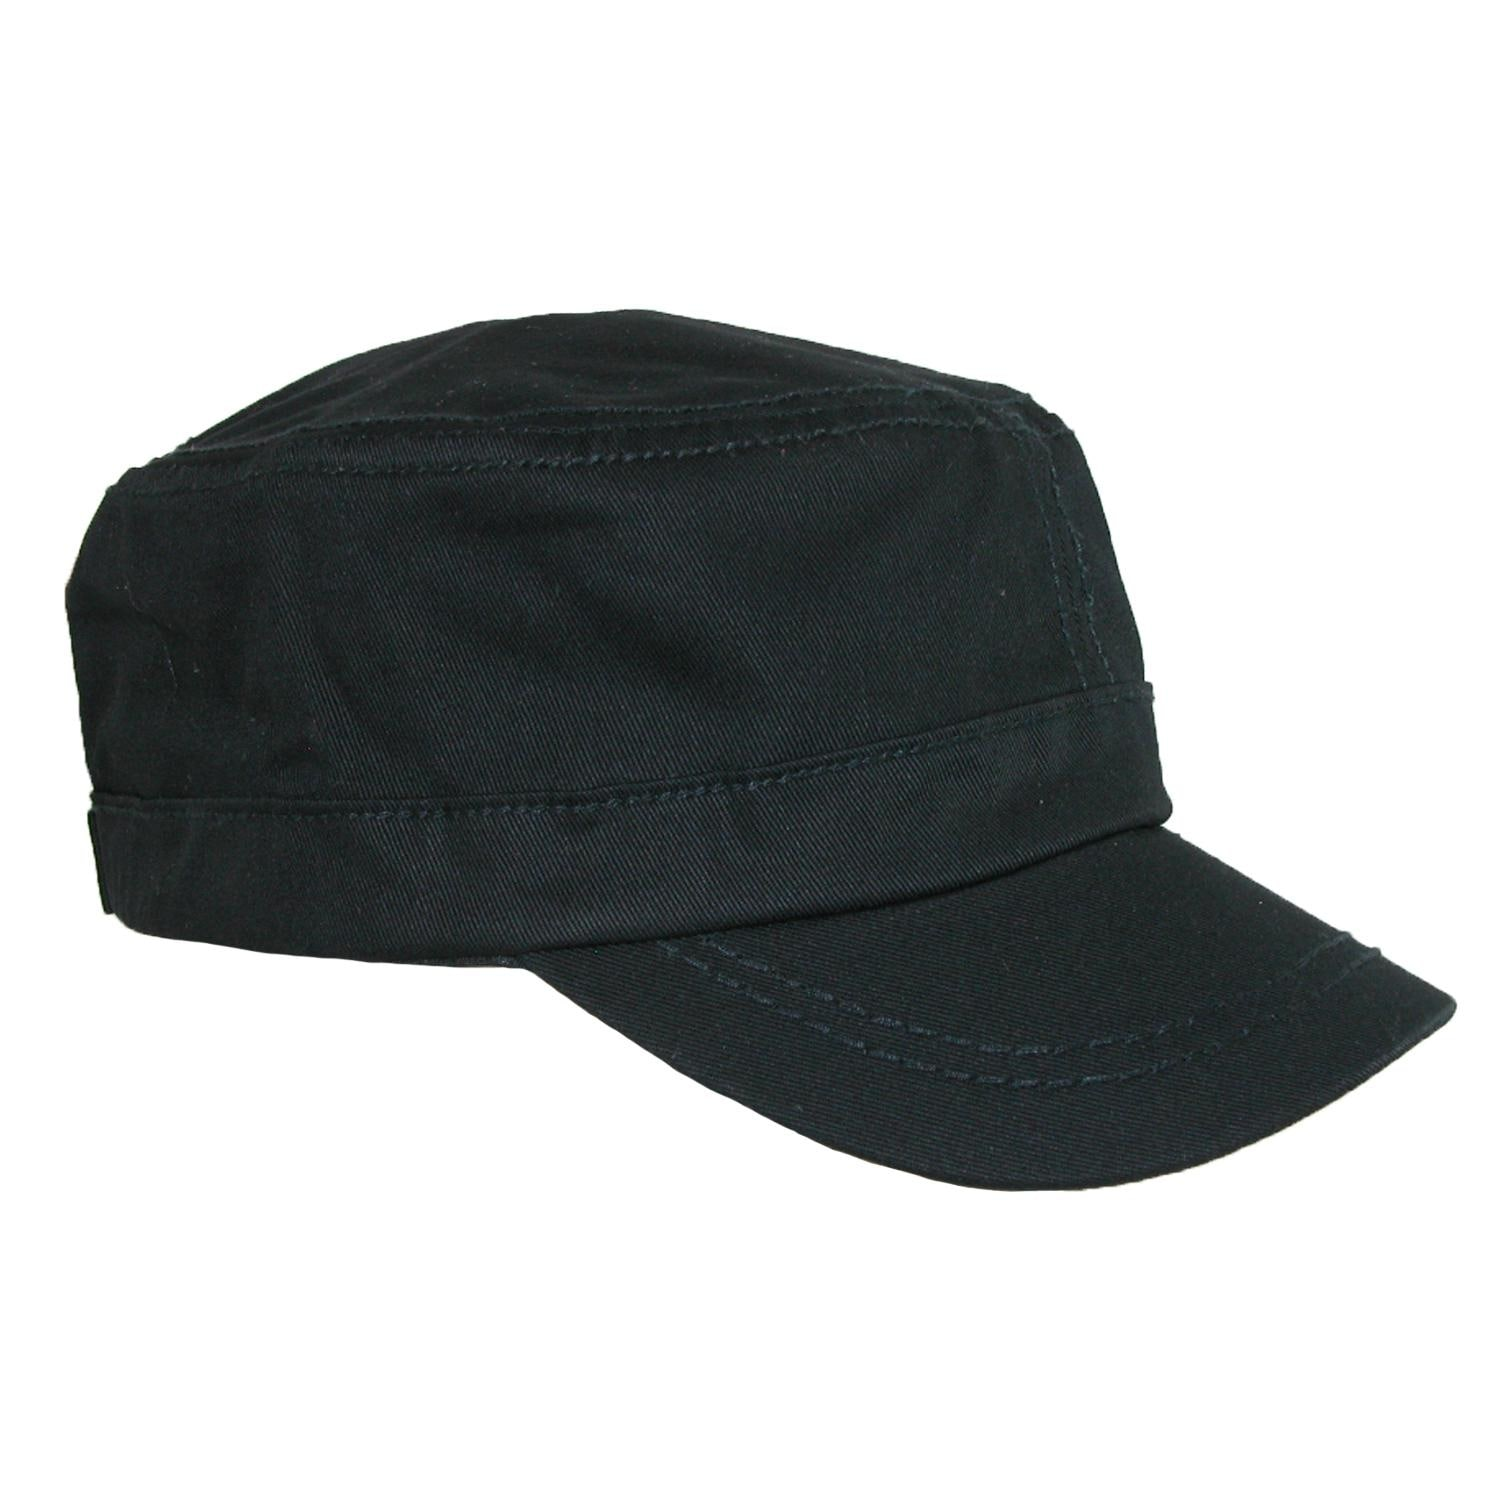 Shop Something Special Men s Cotton Basic Solid Military Cadet Hat ... a1f2c40bb6c